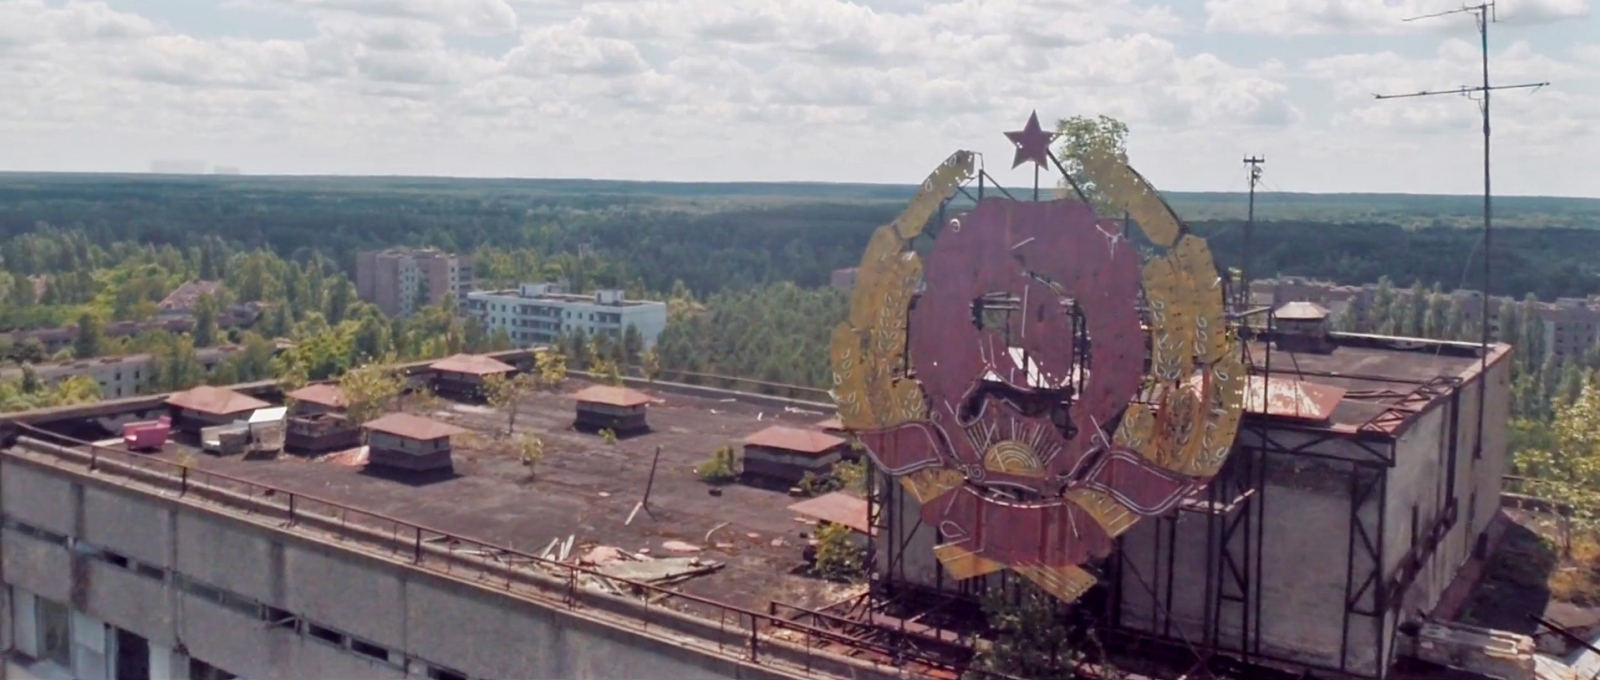 Soviet billboard on a building in the city of Pripyat